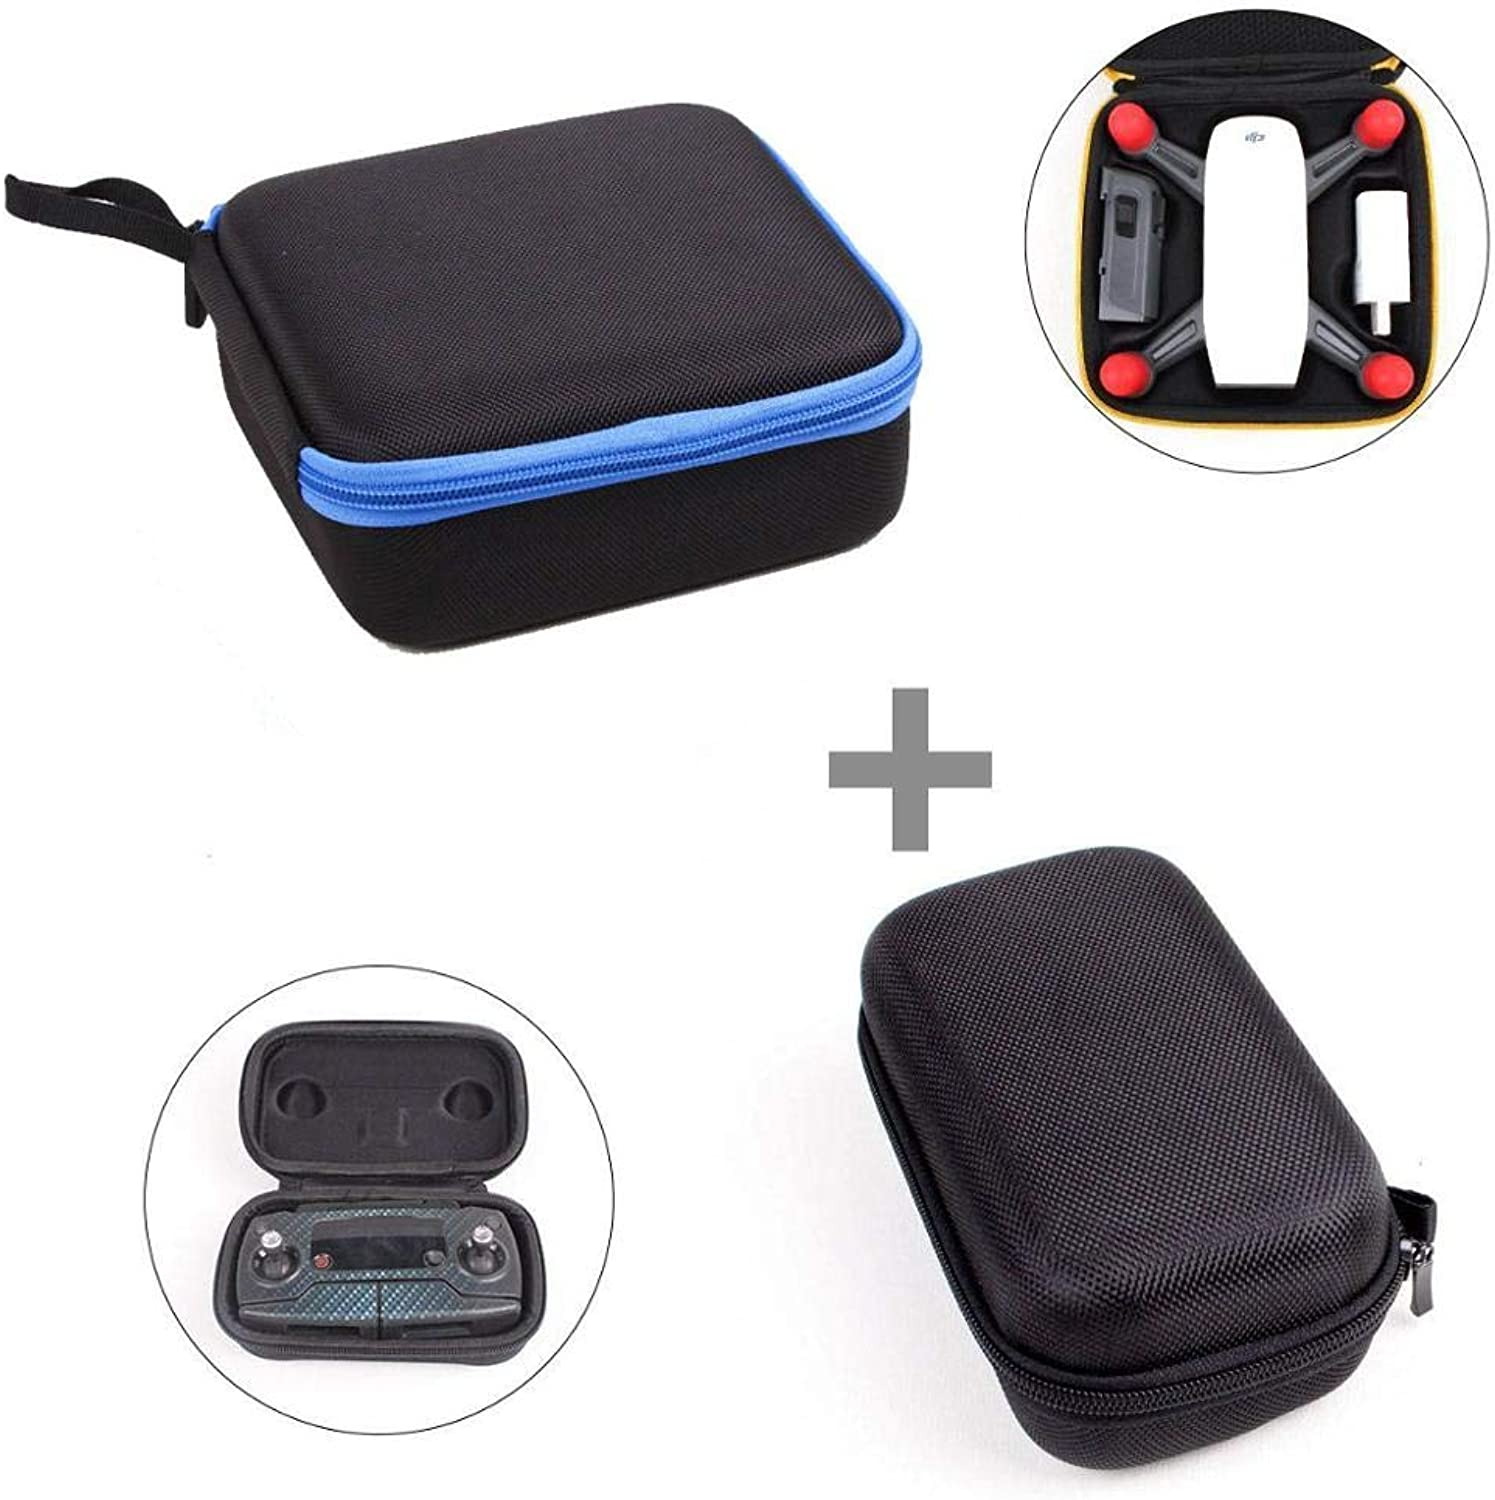 CIVIQ 2 in 1 DJI Spark Case Mini Quadcopter Cases Body Battery Storage Box Zipper Caryying Case Withe Remote Controller Bag